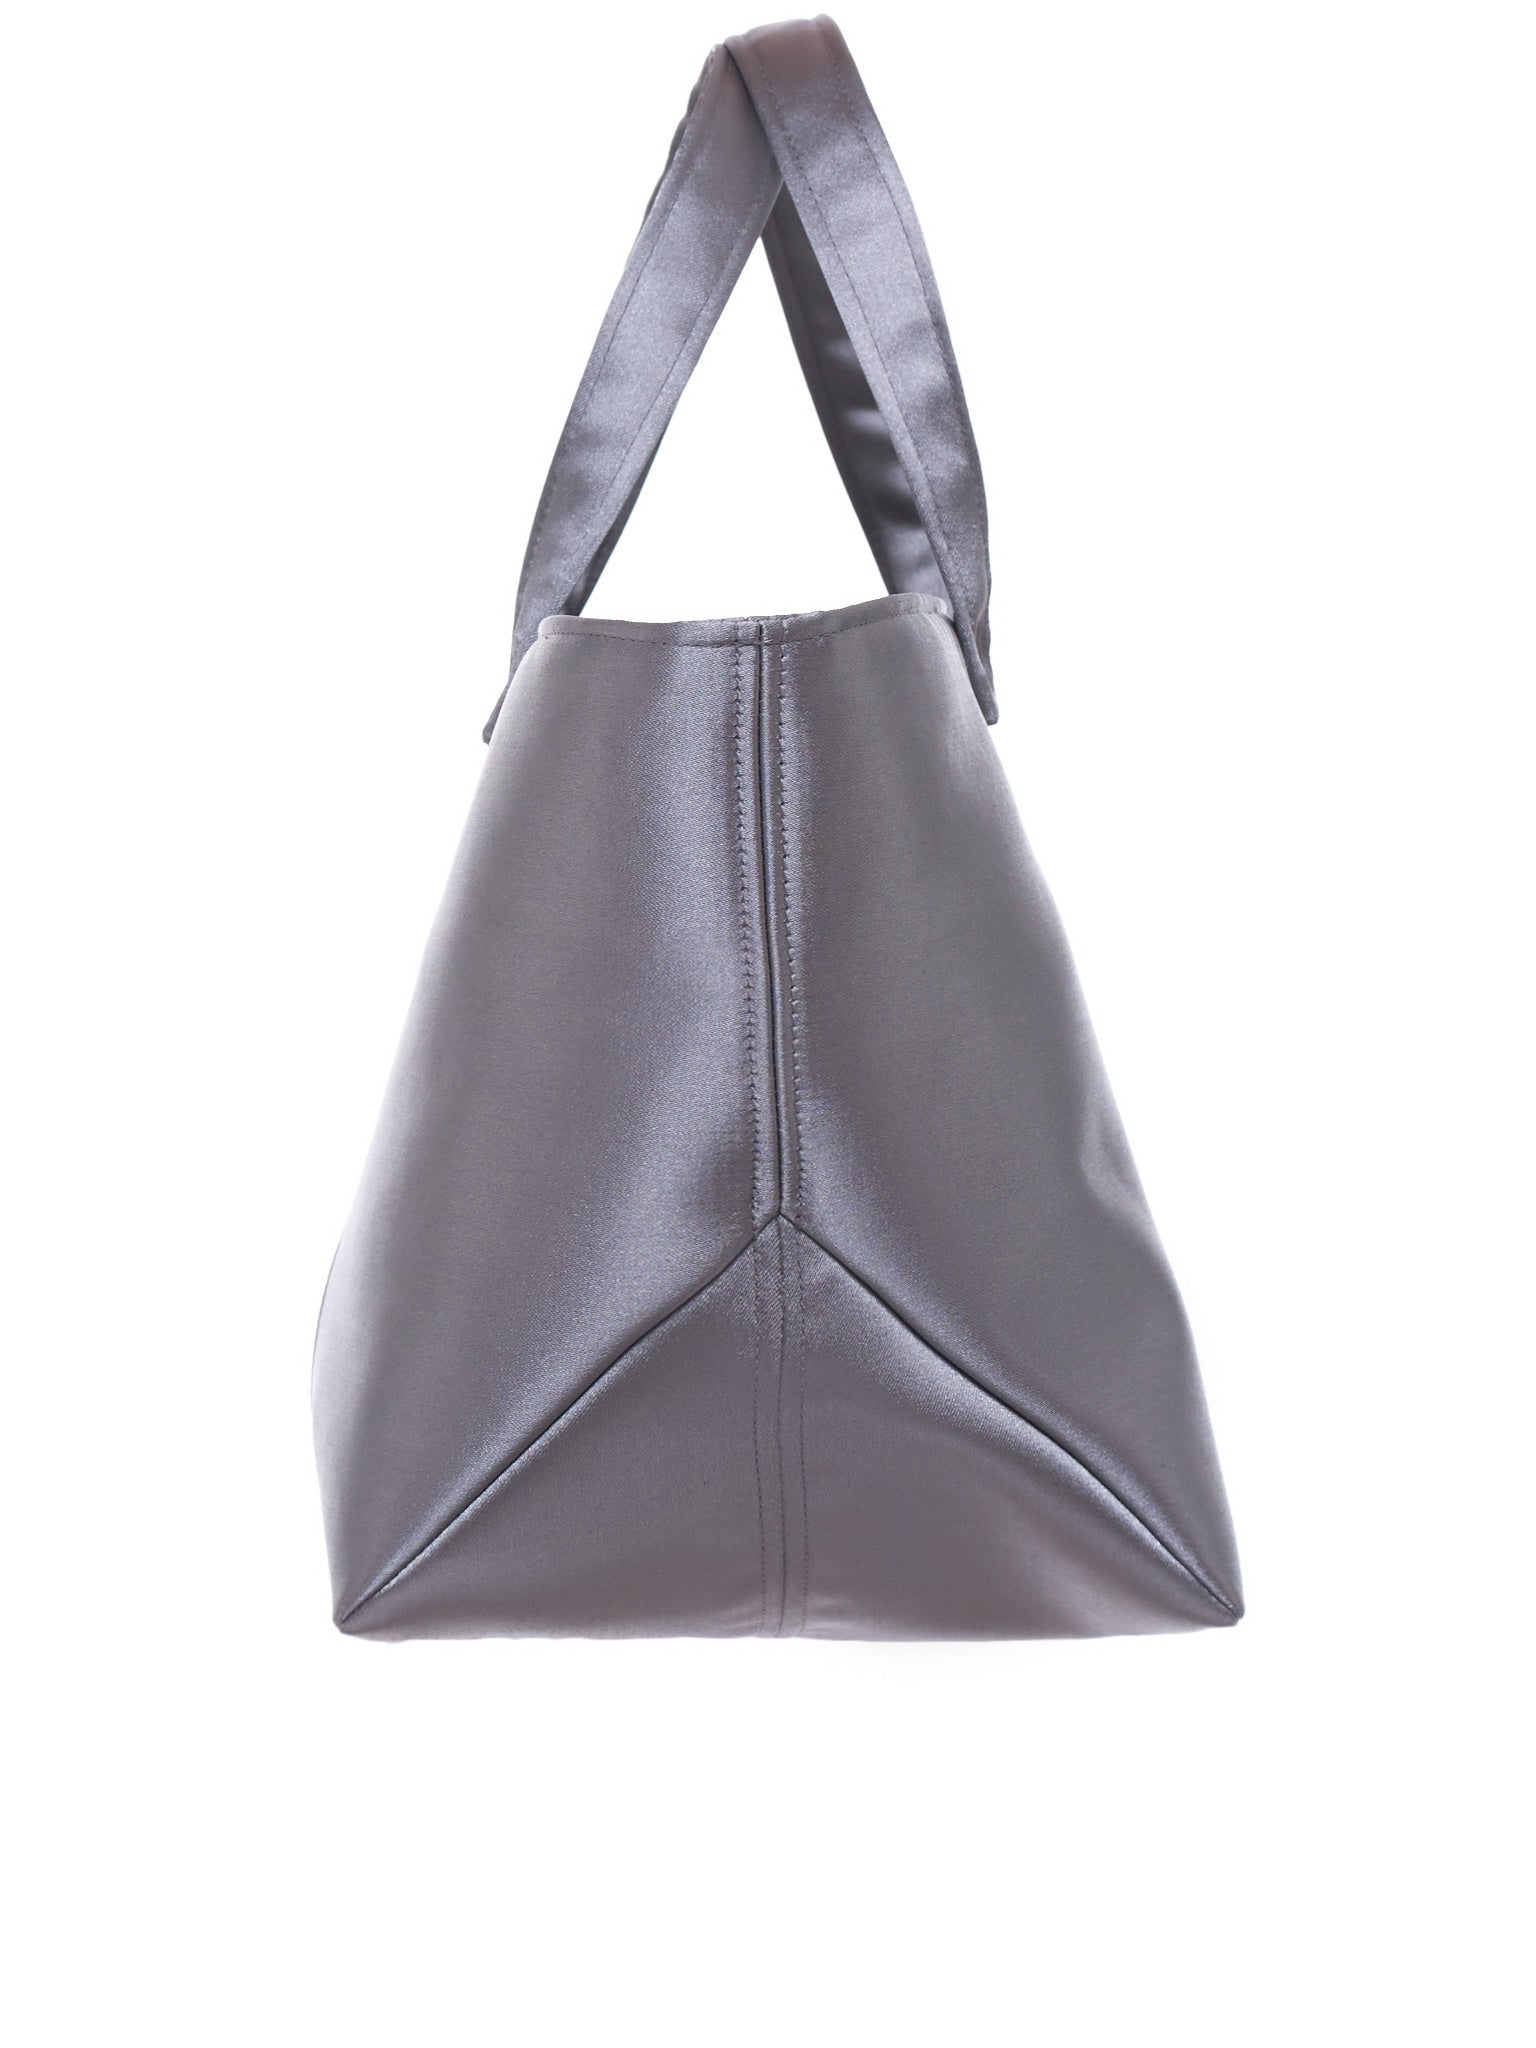 Ludovic de Saint Sernin Bag - Hlorenzo Side